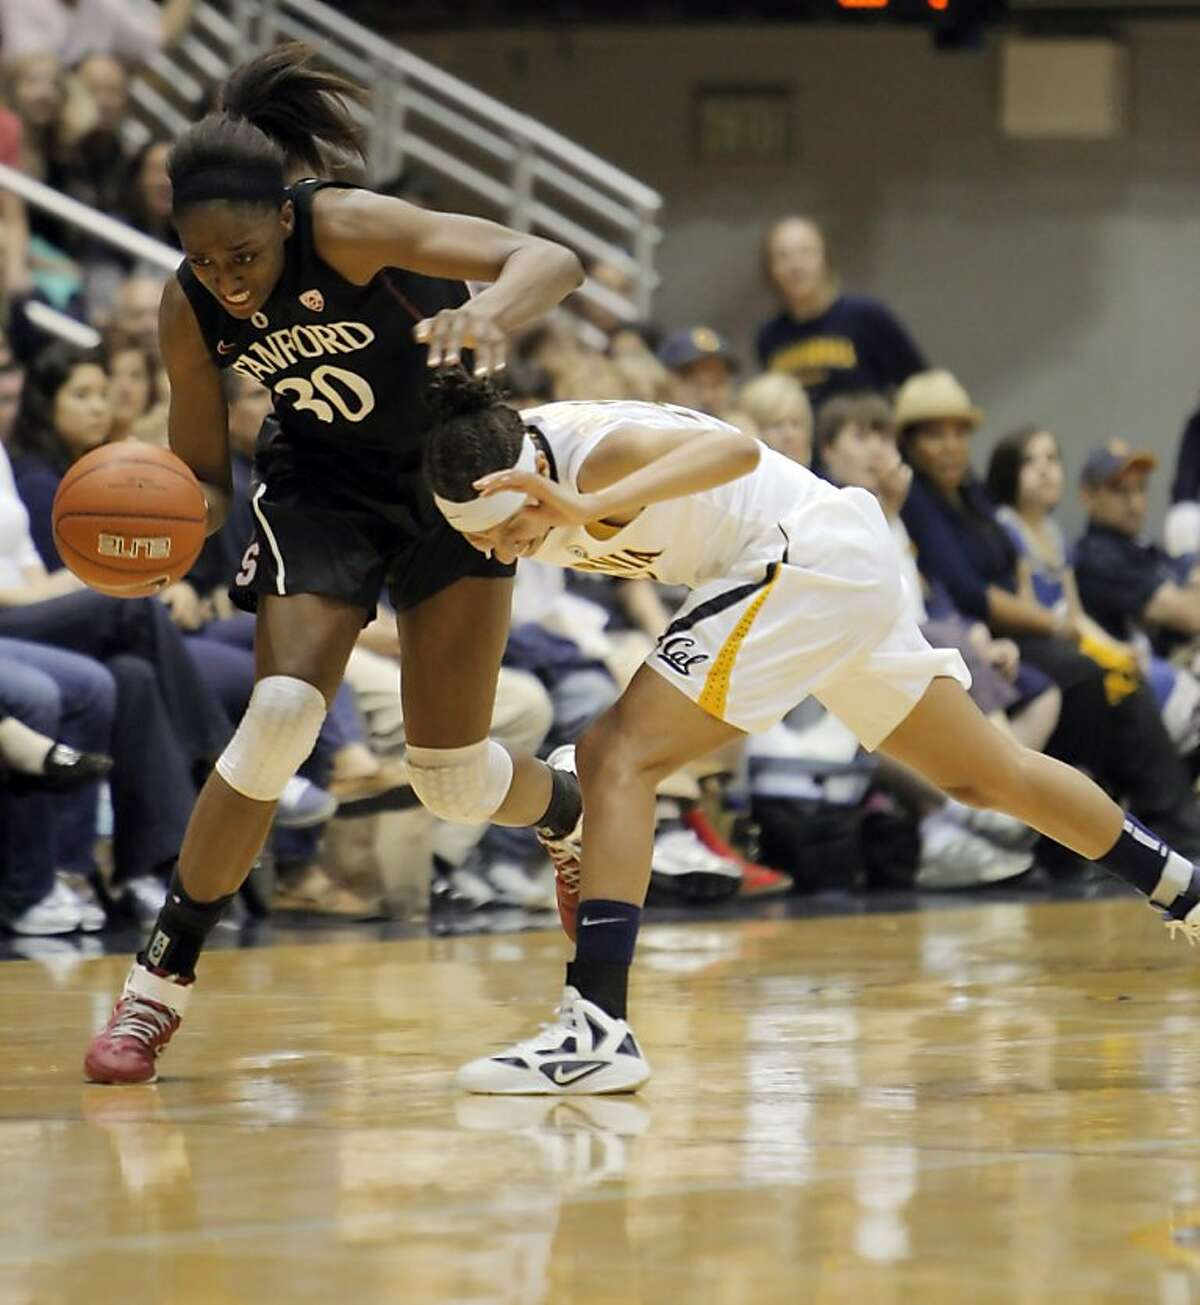 Stanford's Nnemkadi Ogwumike goes after a loose ball against Cal's Layshia Clarendon in the first half. The California women hosted Stanford at Haas Pavilion in Berkeley, Calif., on Sunday, March 4, 2012. The Golden Bears lost to the Cardinal 86-61.